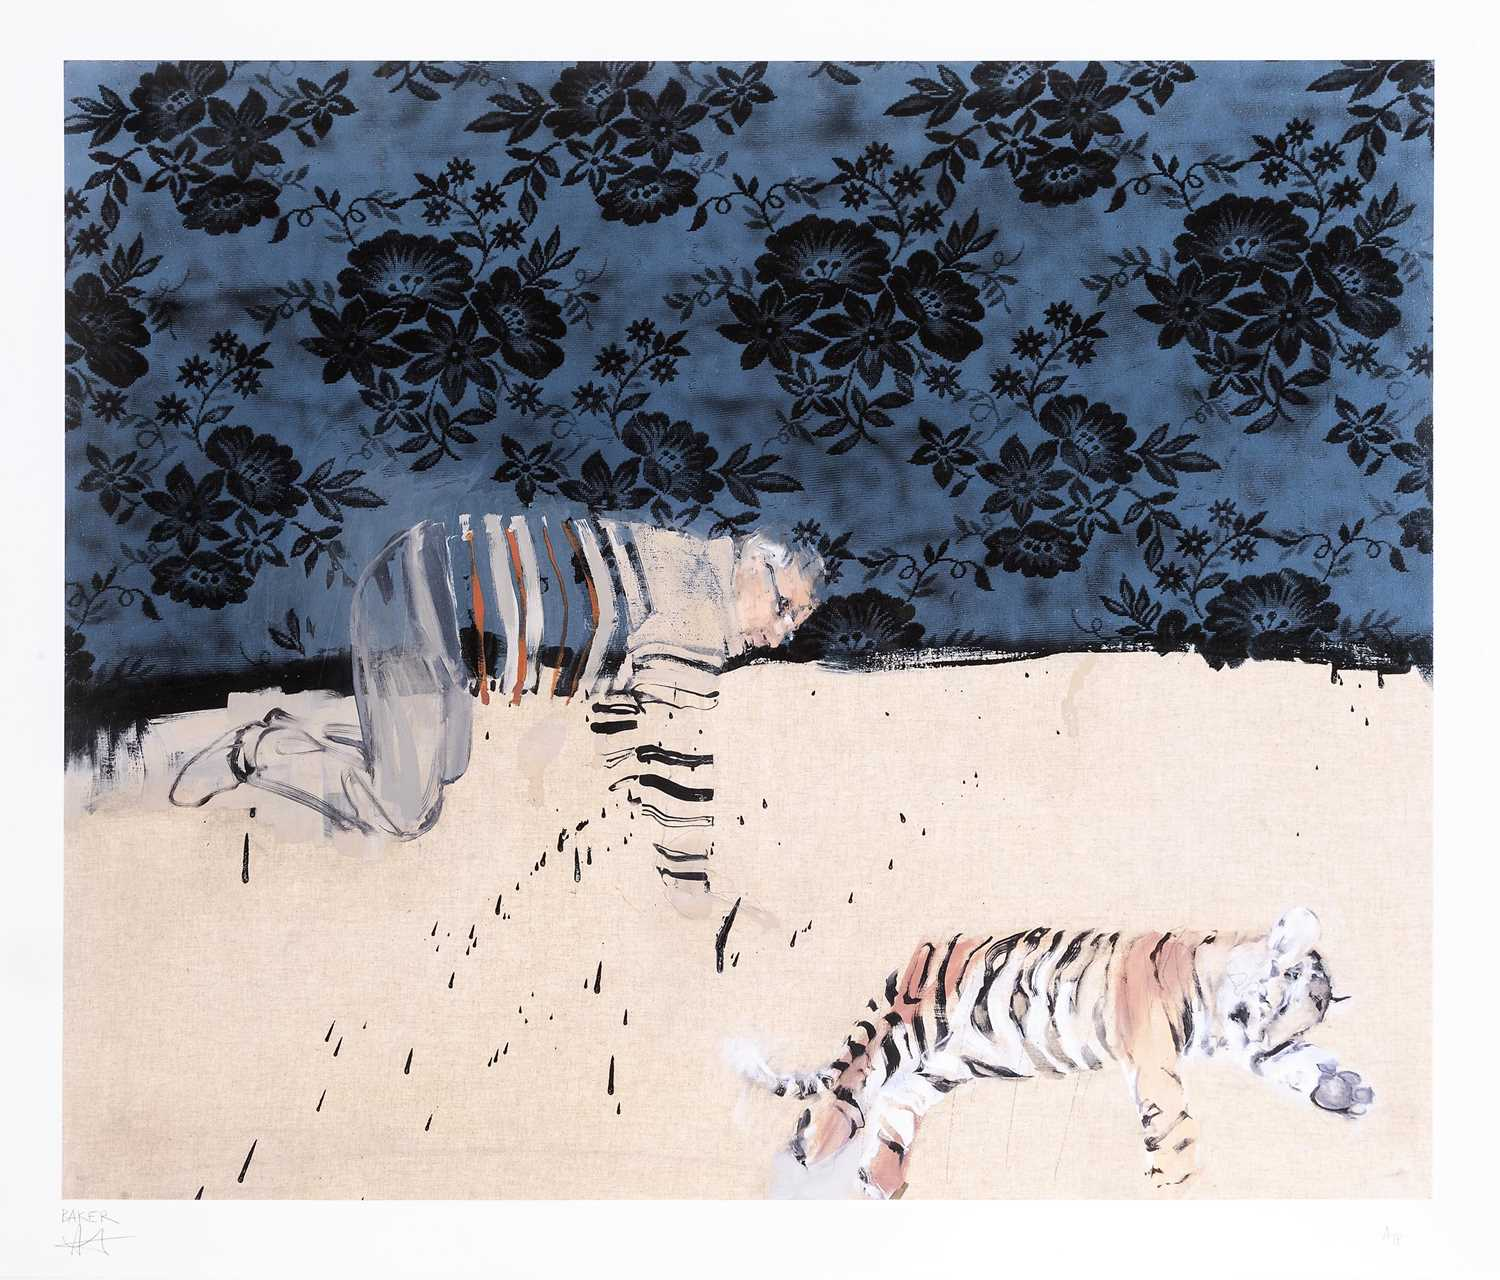 Lot 5 - Charming Baker (British 1964-), 'The Unfathomable Distance Of Proximity', 2010